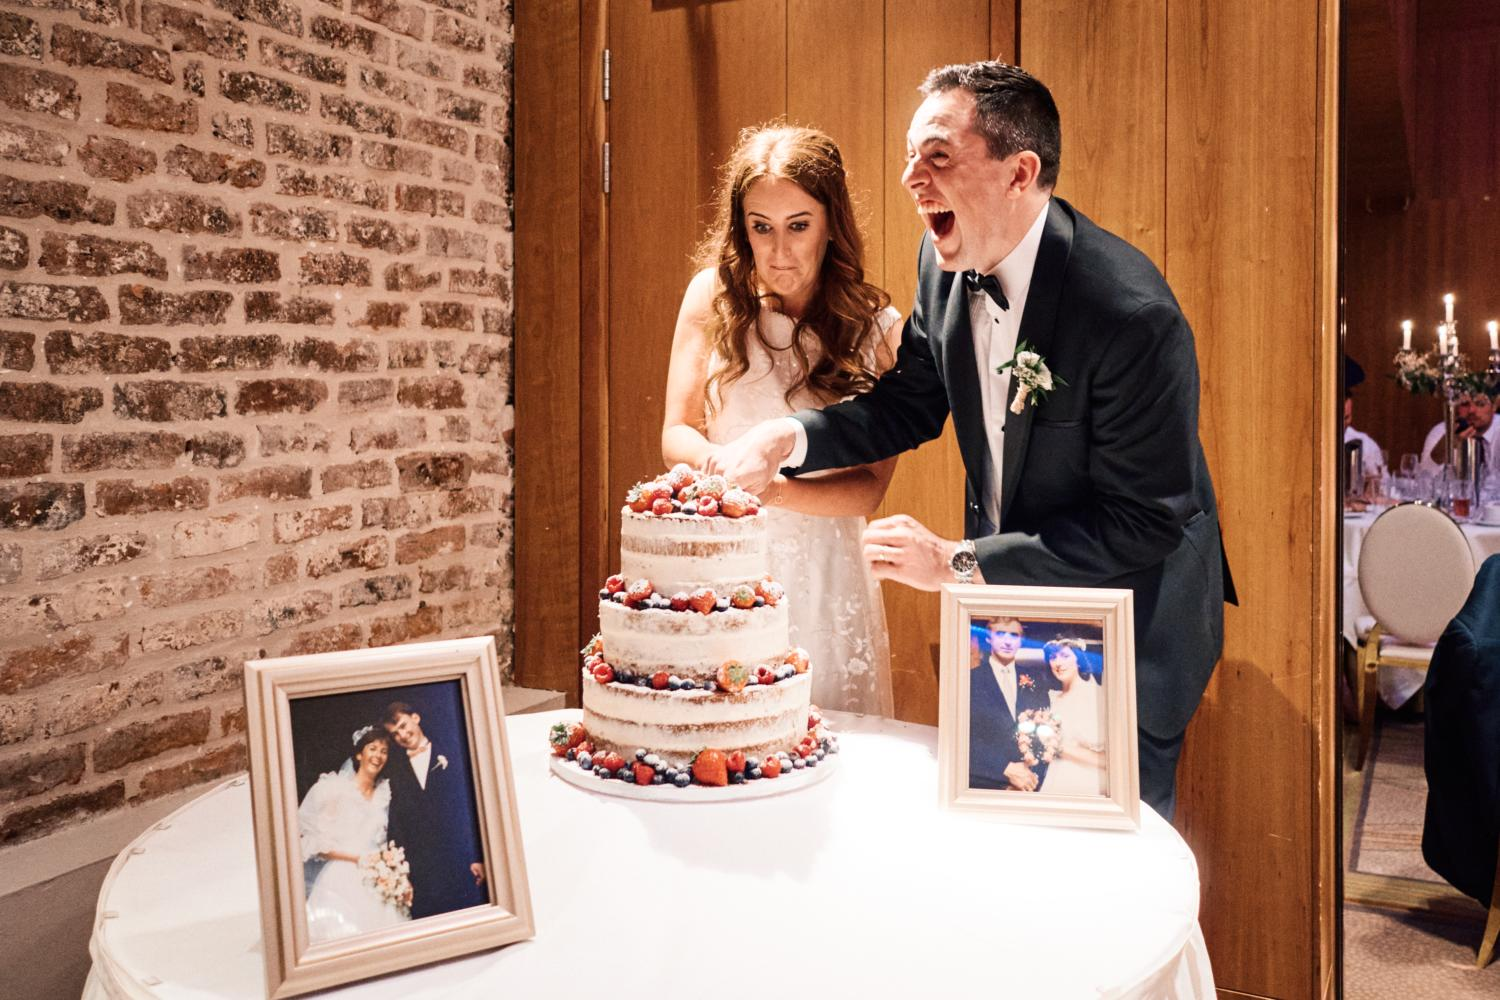 A bride and groom laugh while cutting the cake